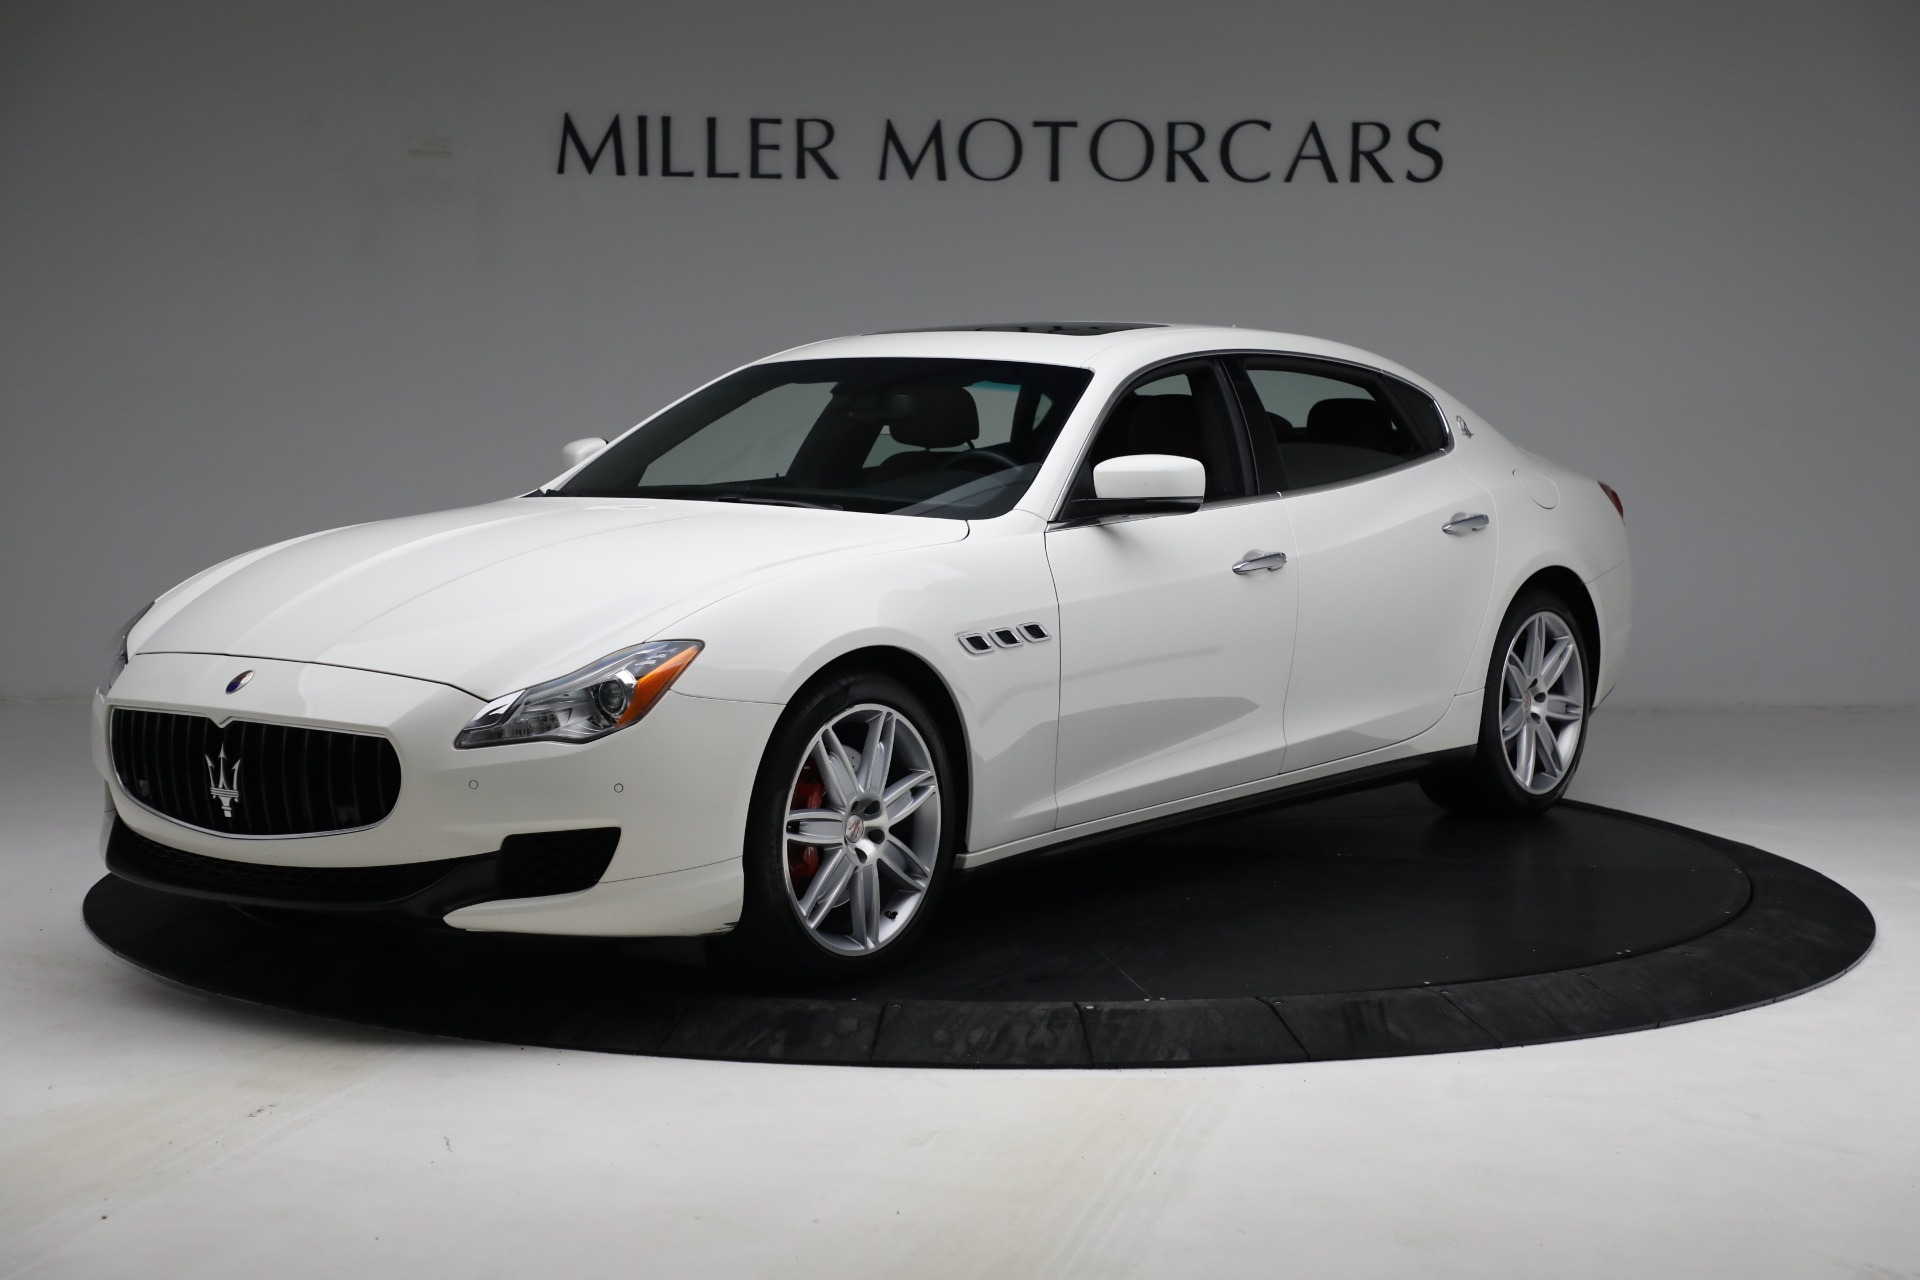 Used 2015 Maserati Quattroporte S Q4 For Sale In Greenwich, CT. Alfa Romeo of Greenwich, 7469 2915_main